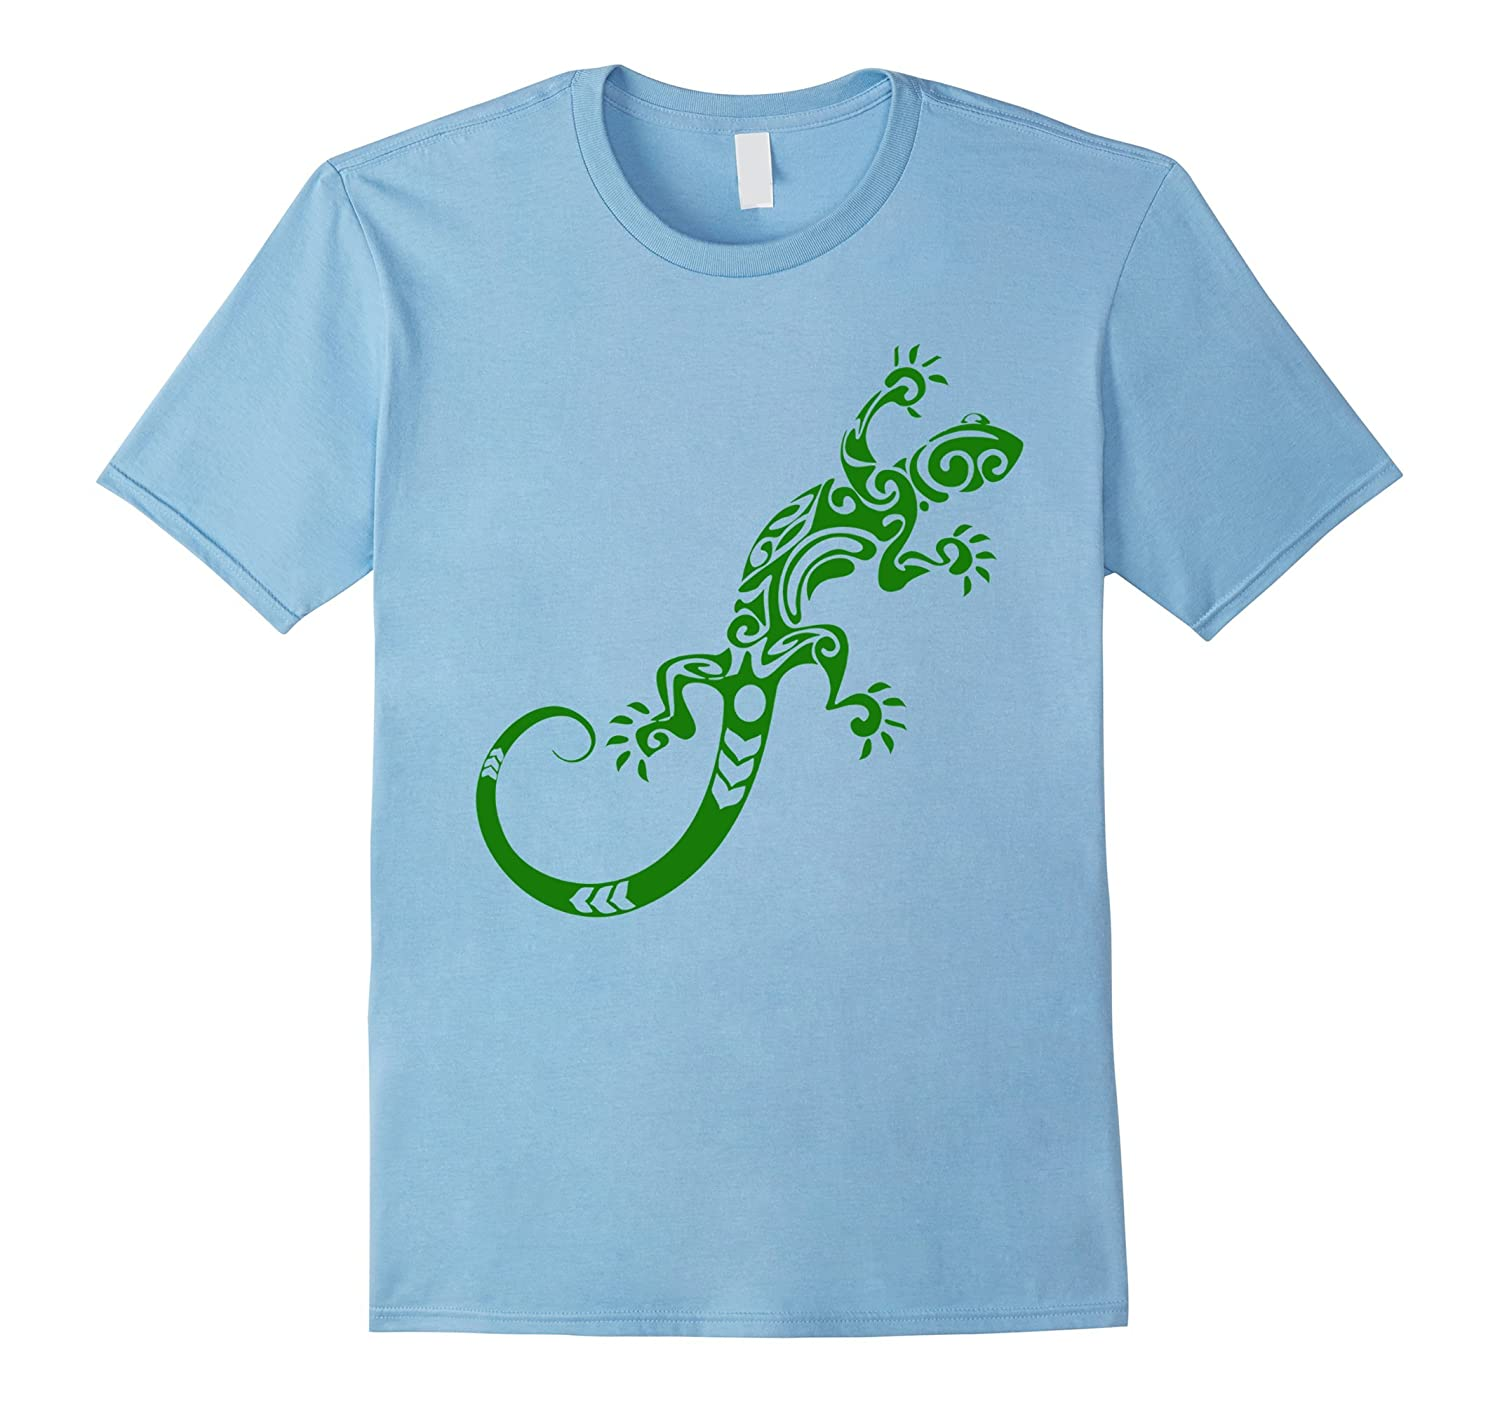 Lizard Green Tribal Pattern T-shirt Pet Gecko Animal Tee-TH